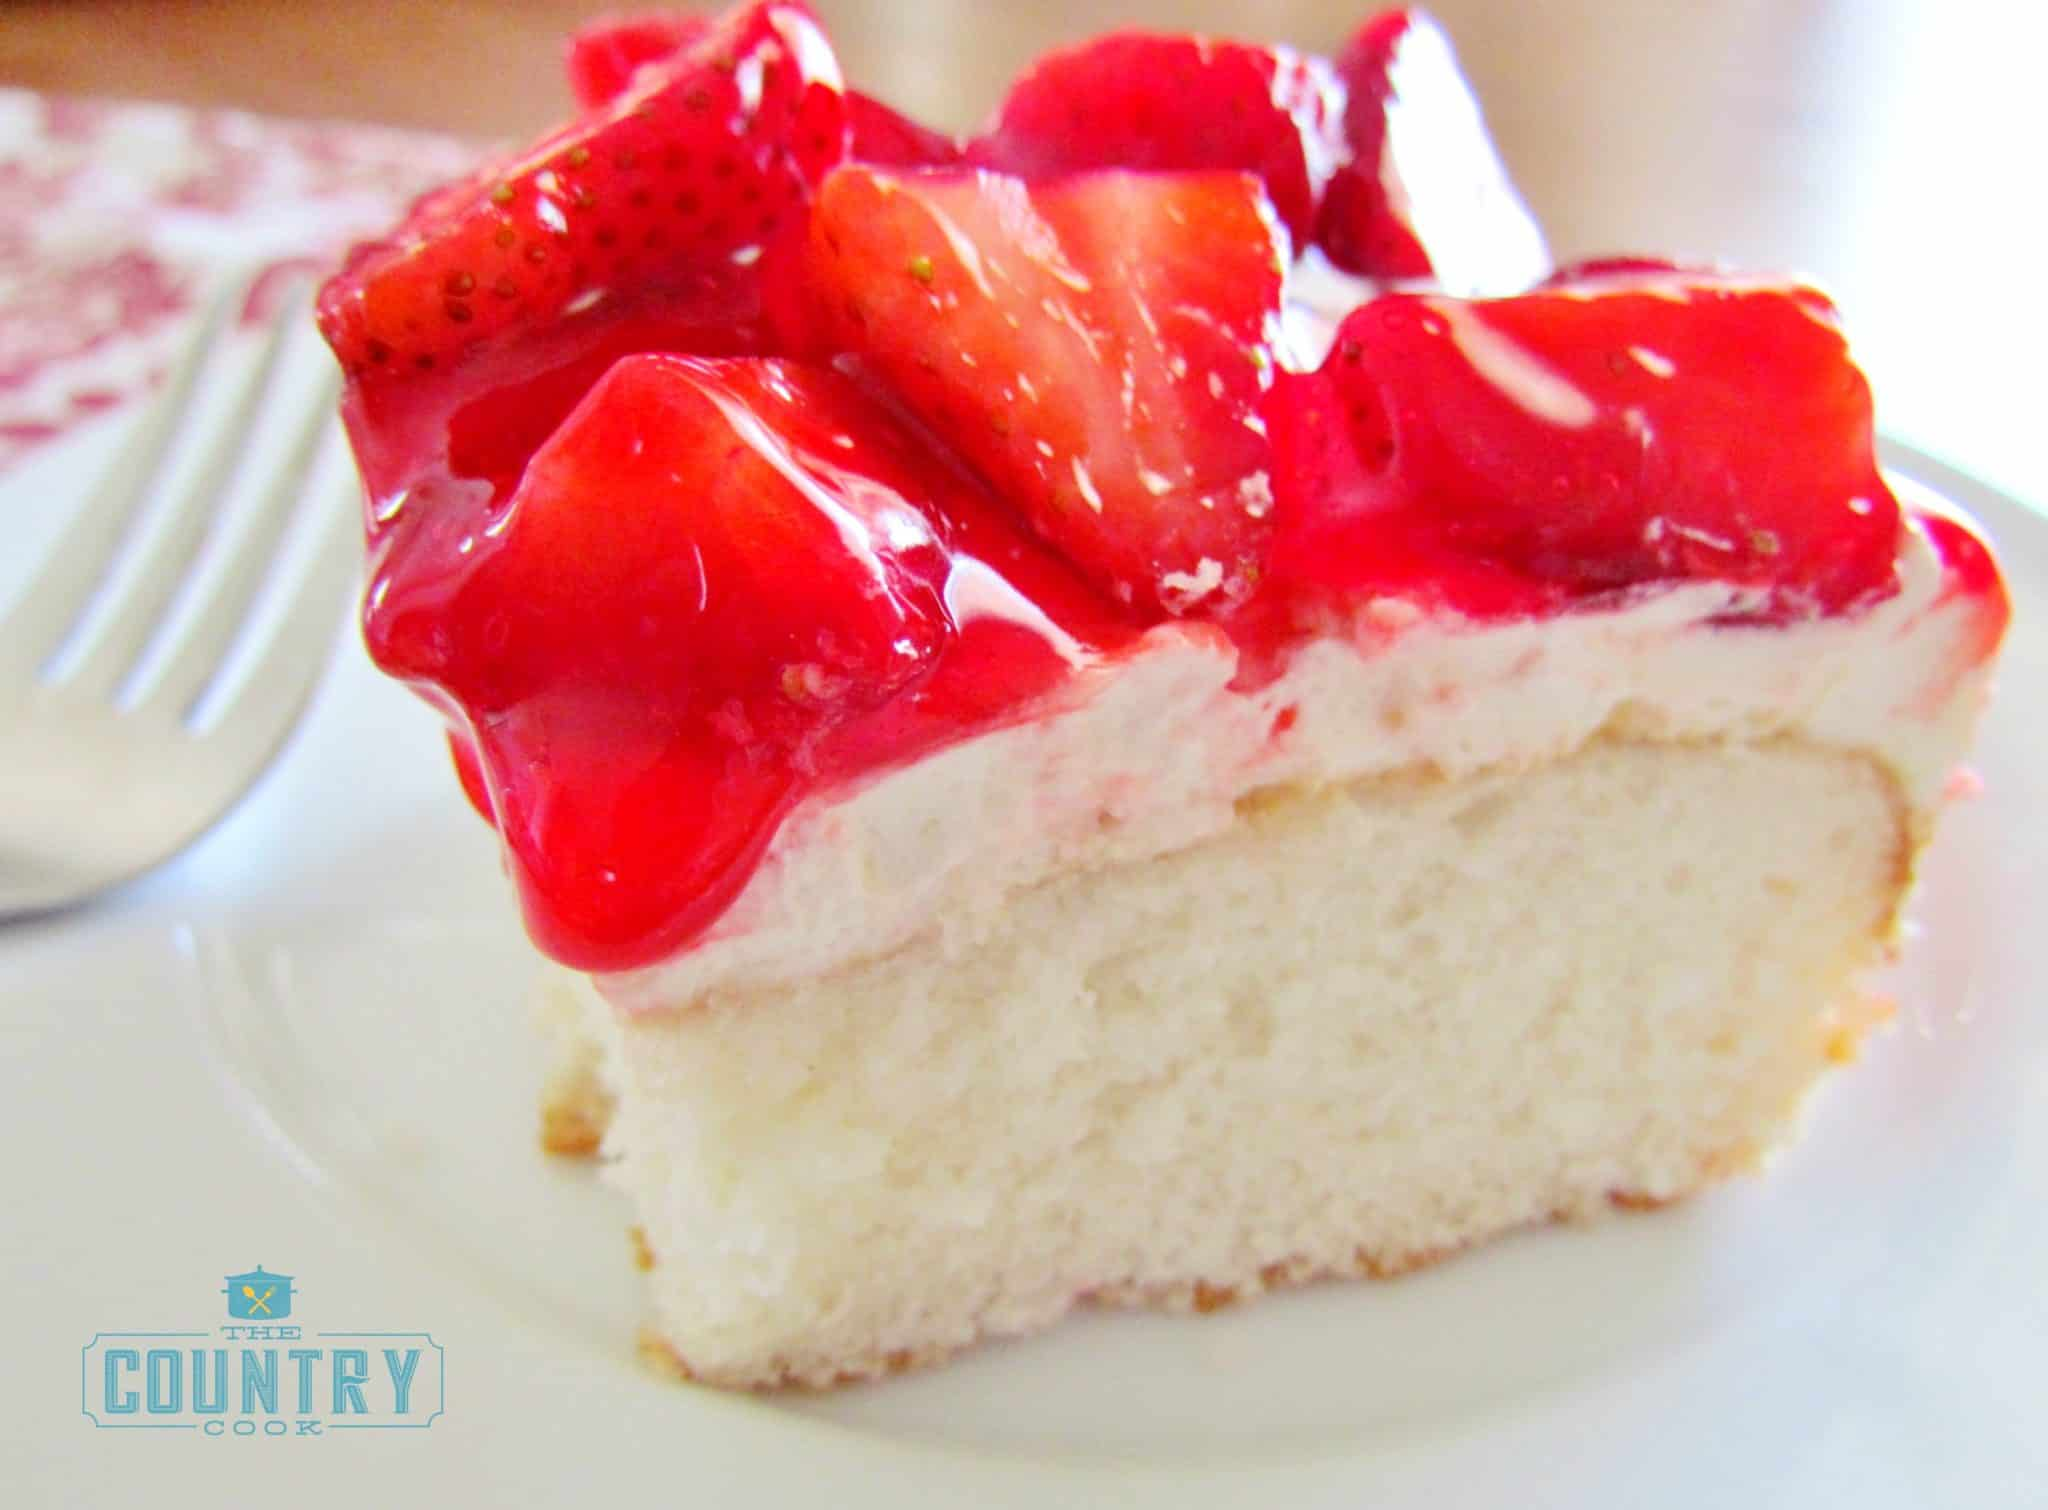 How To Make Strawberry Shortcake With Cake Mix